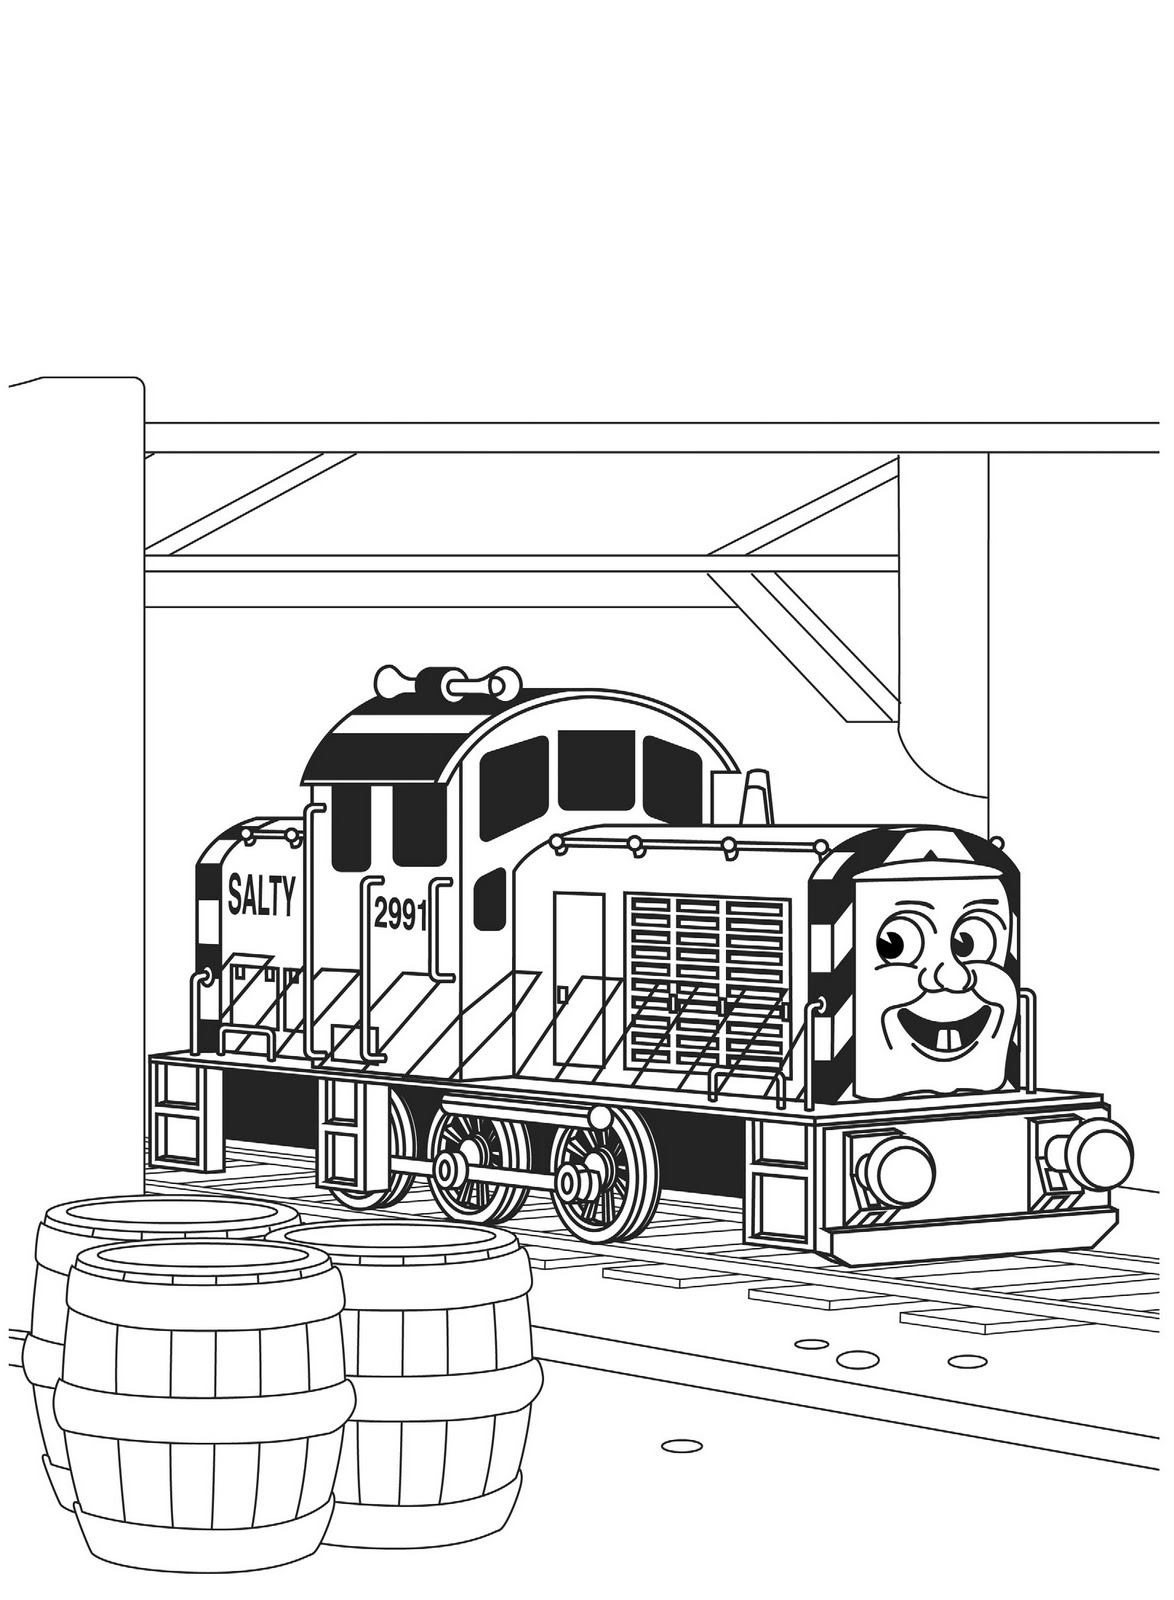 Coloring Pages For Everyone Thomas The Tank Engine